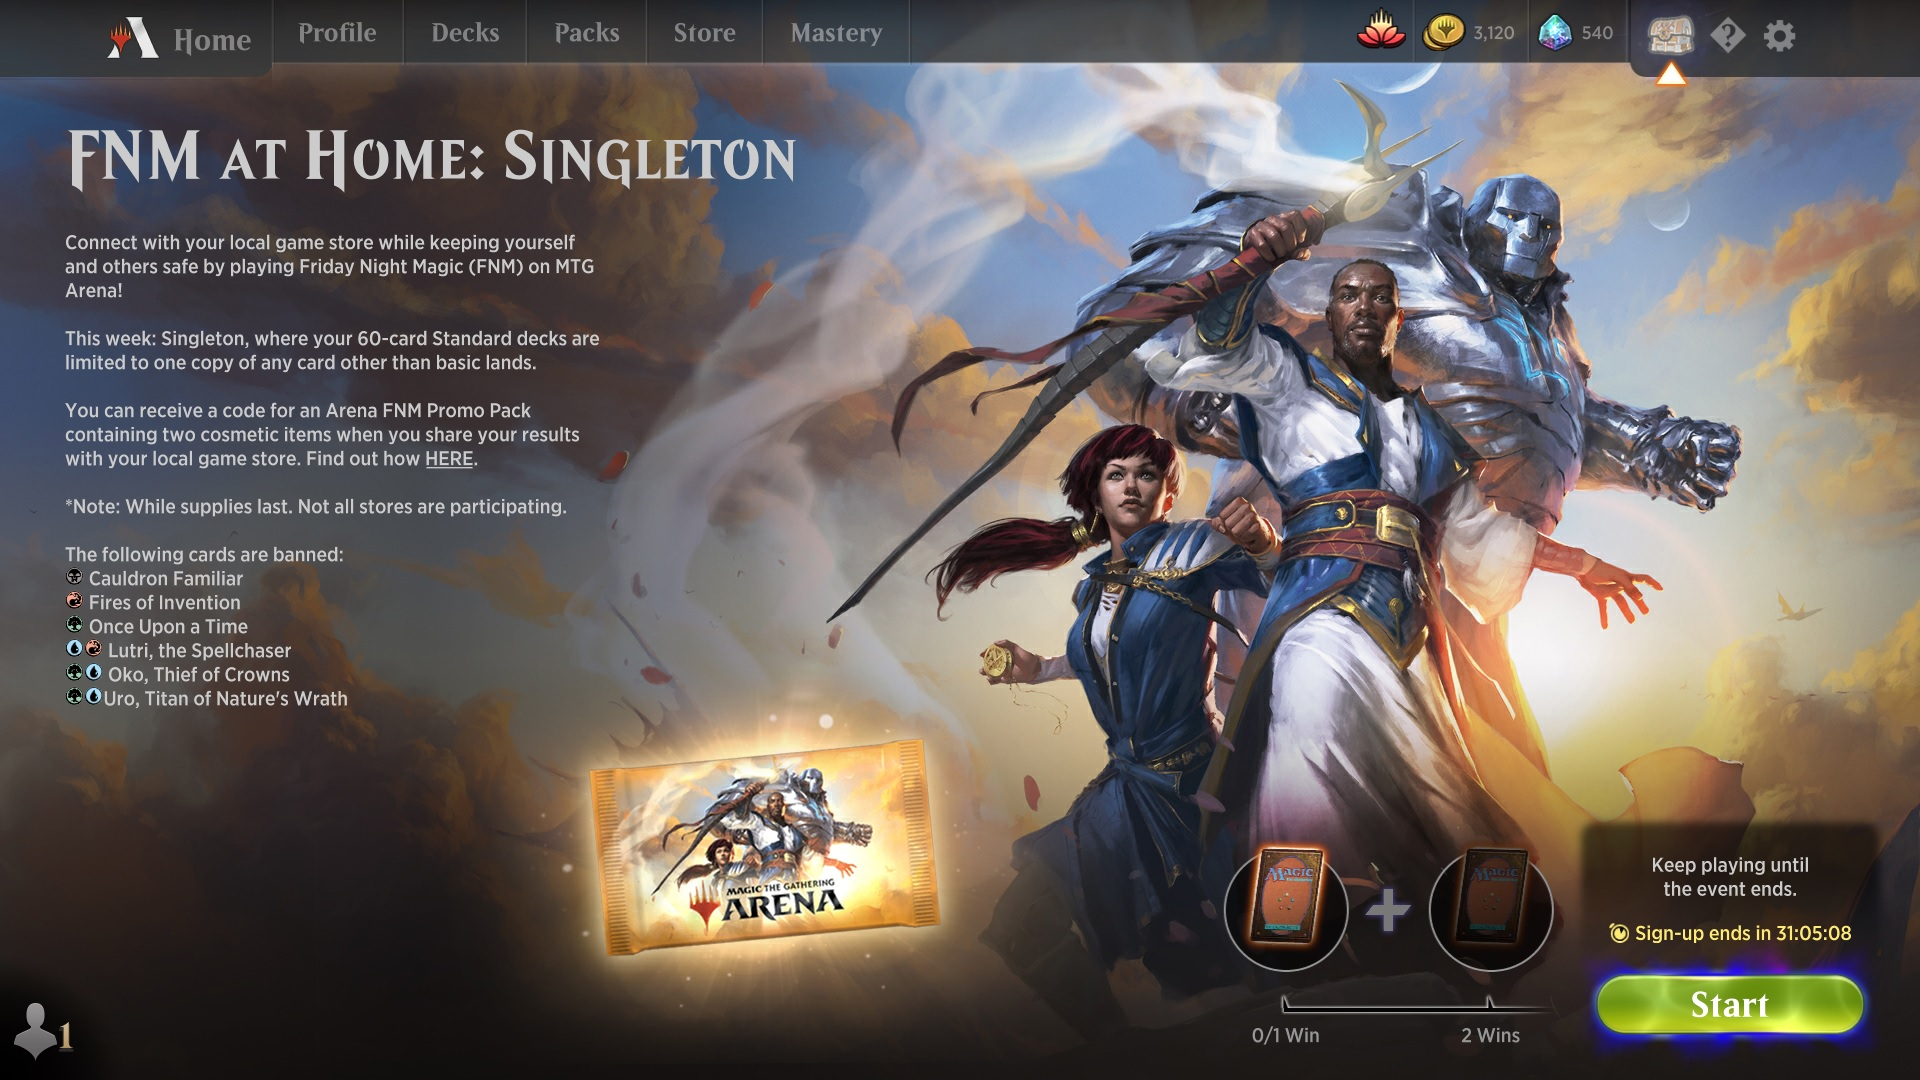 FNM at Home: Singleton